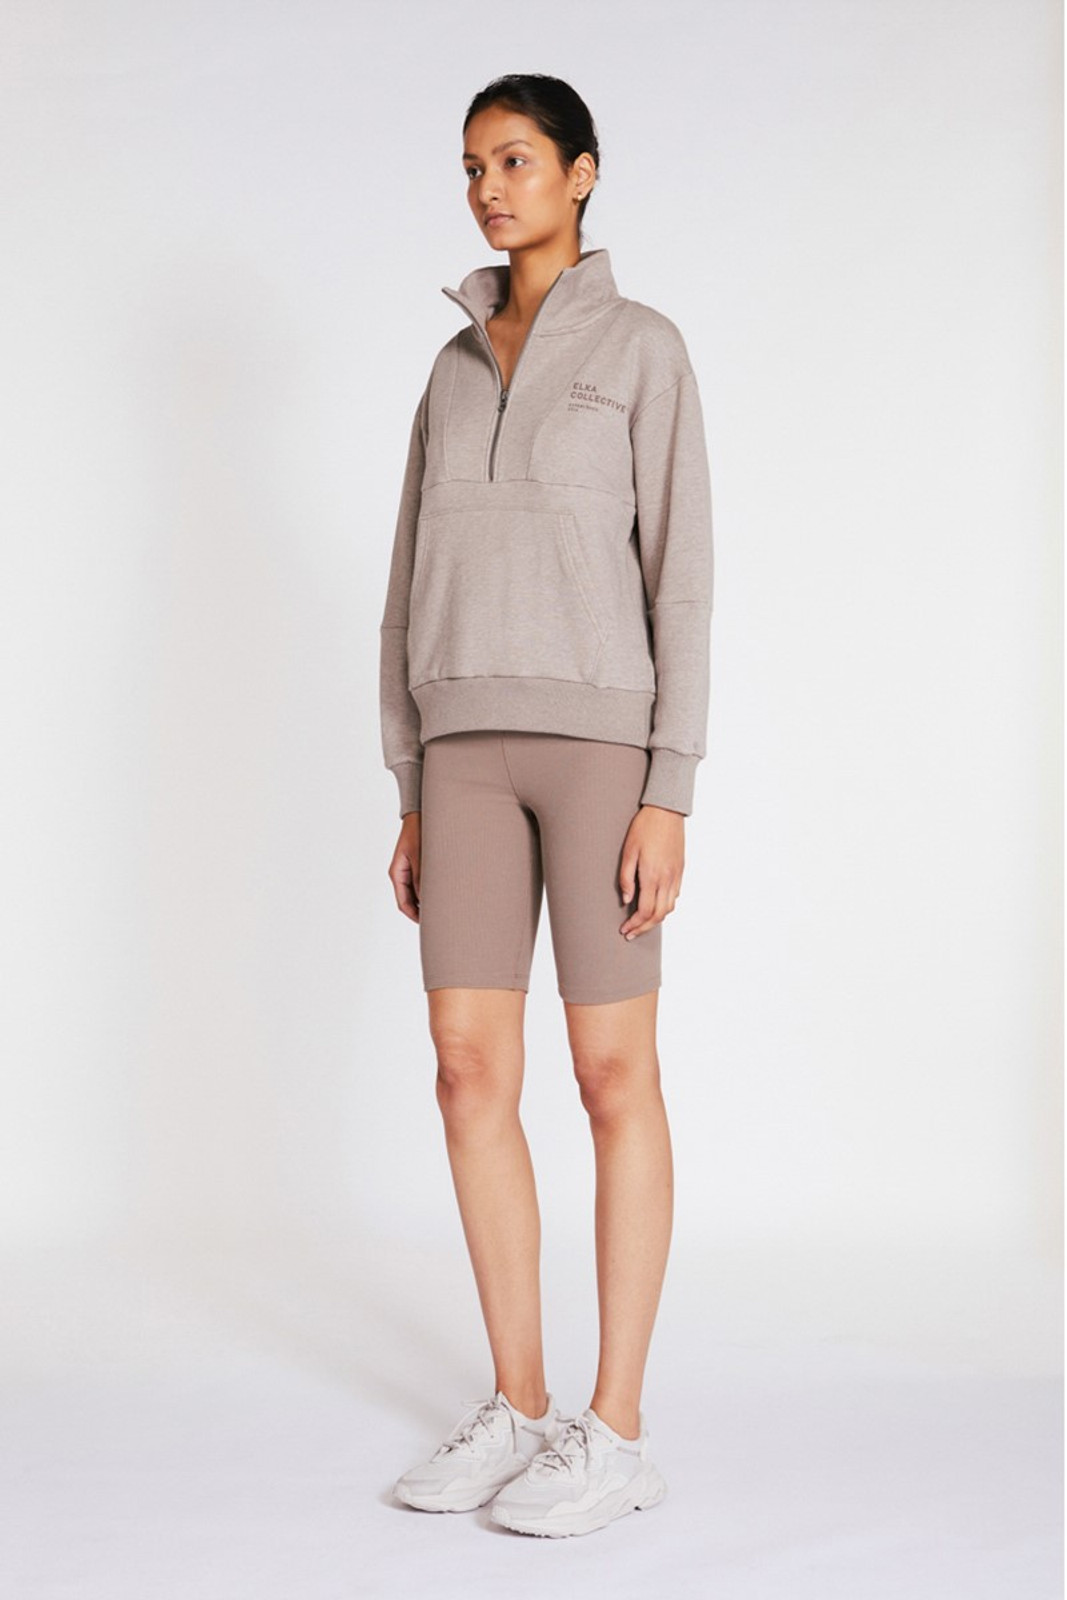 Elka Collective Mindful Sweater Neutrals  3